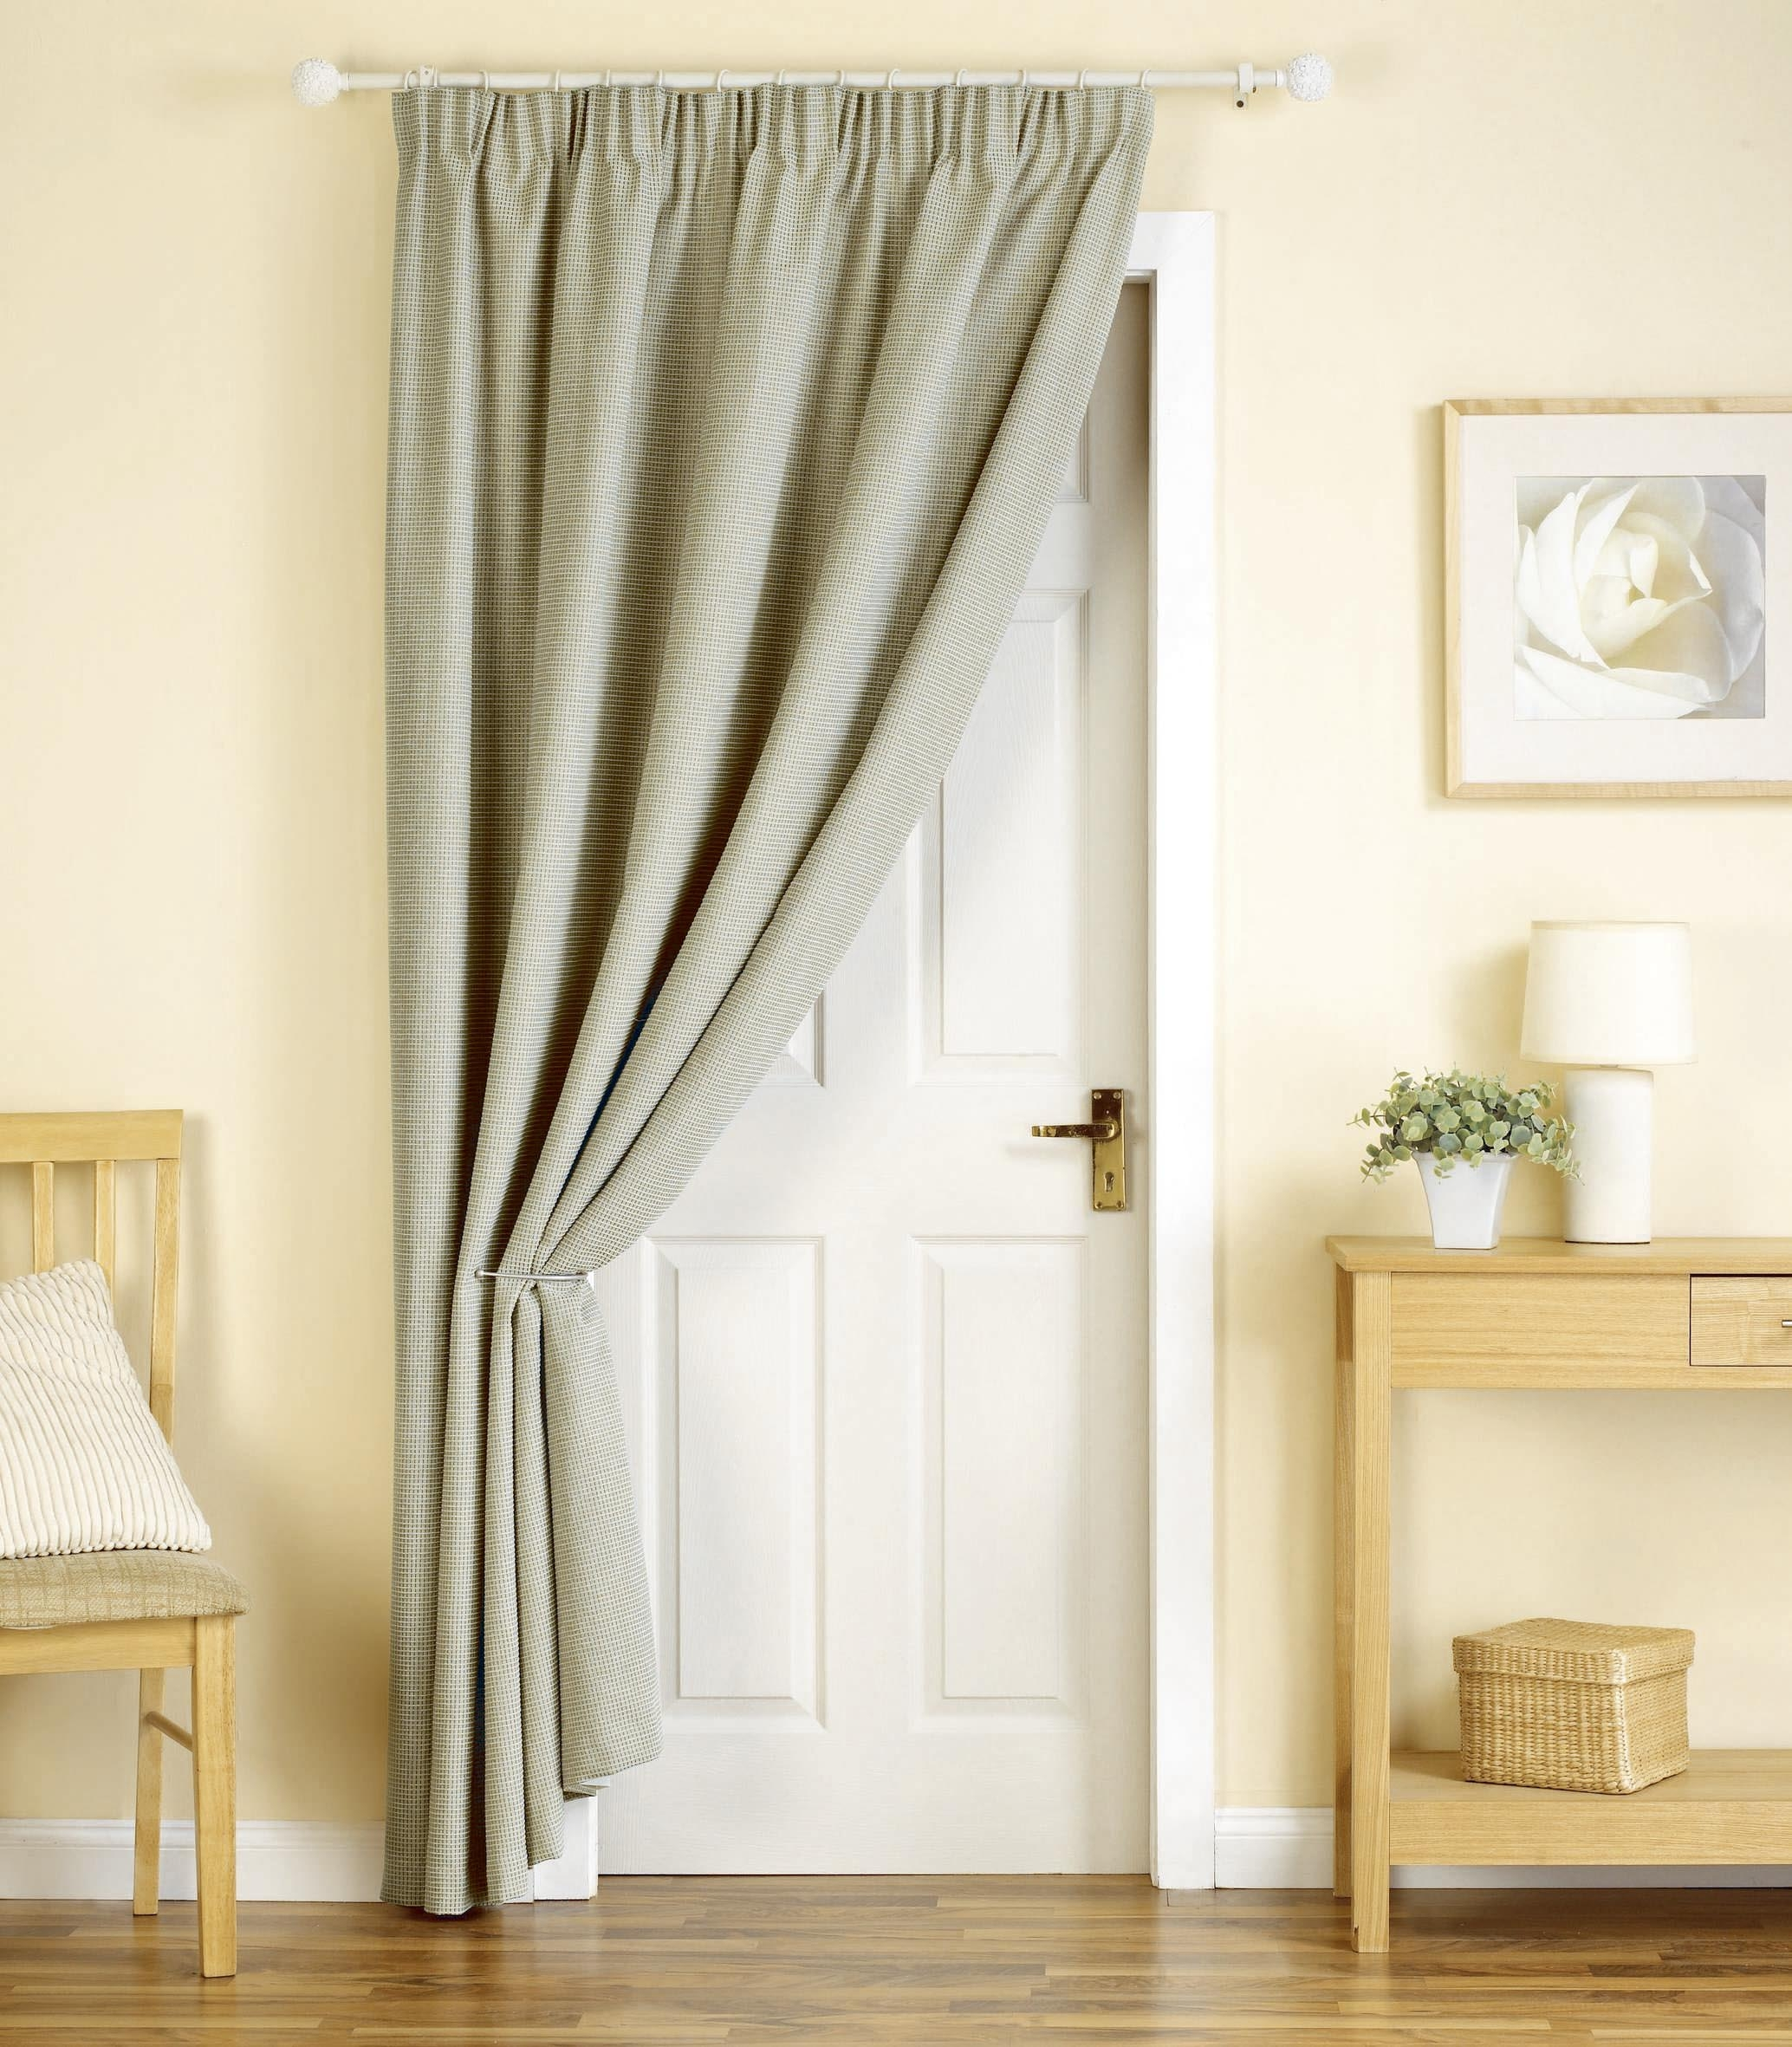 Door Curtain Ideas Best 20 Front Door Curtains Ideas On Throughout Doorway Curtains (Image 11 of 25)